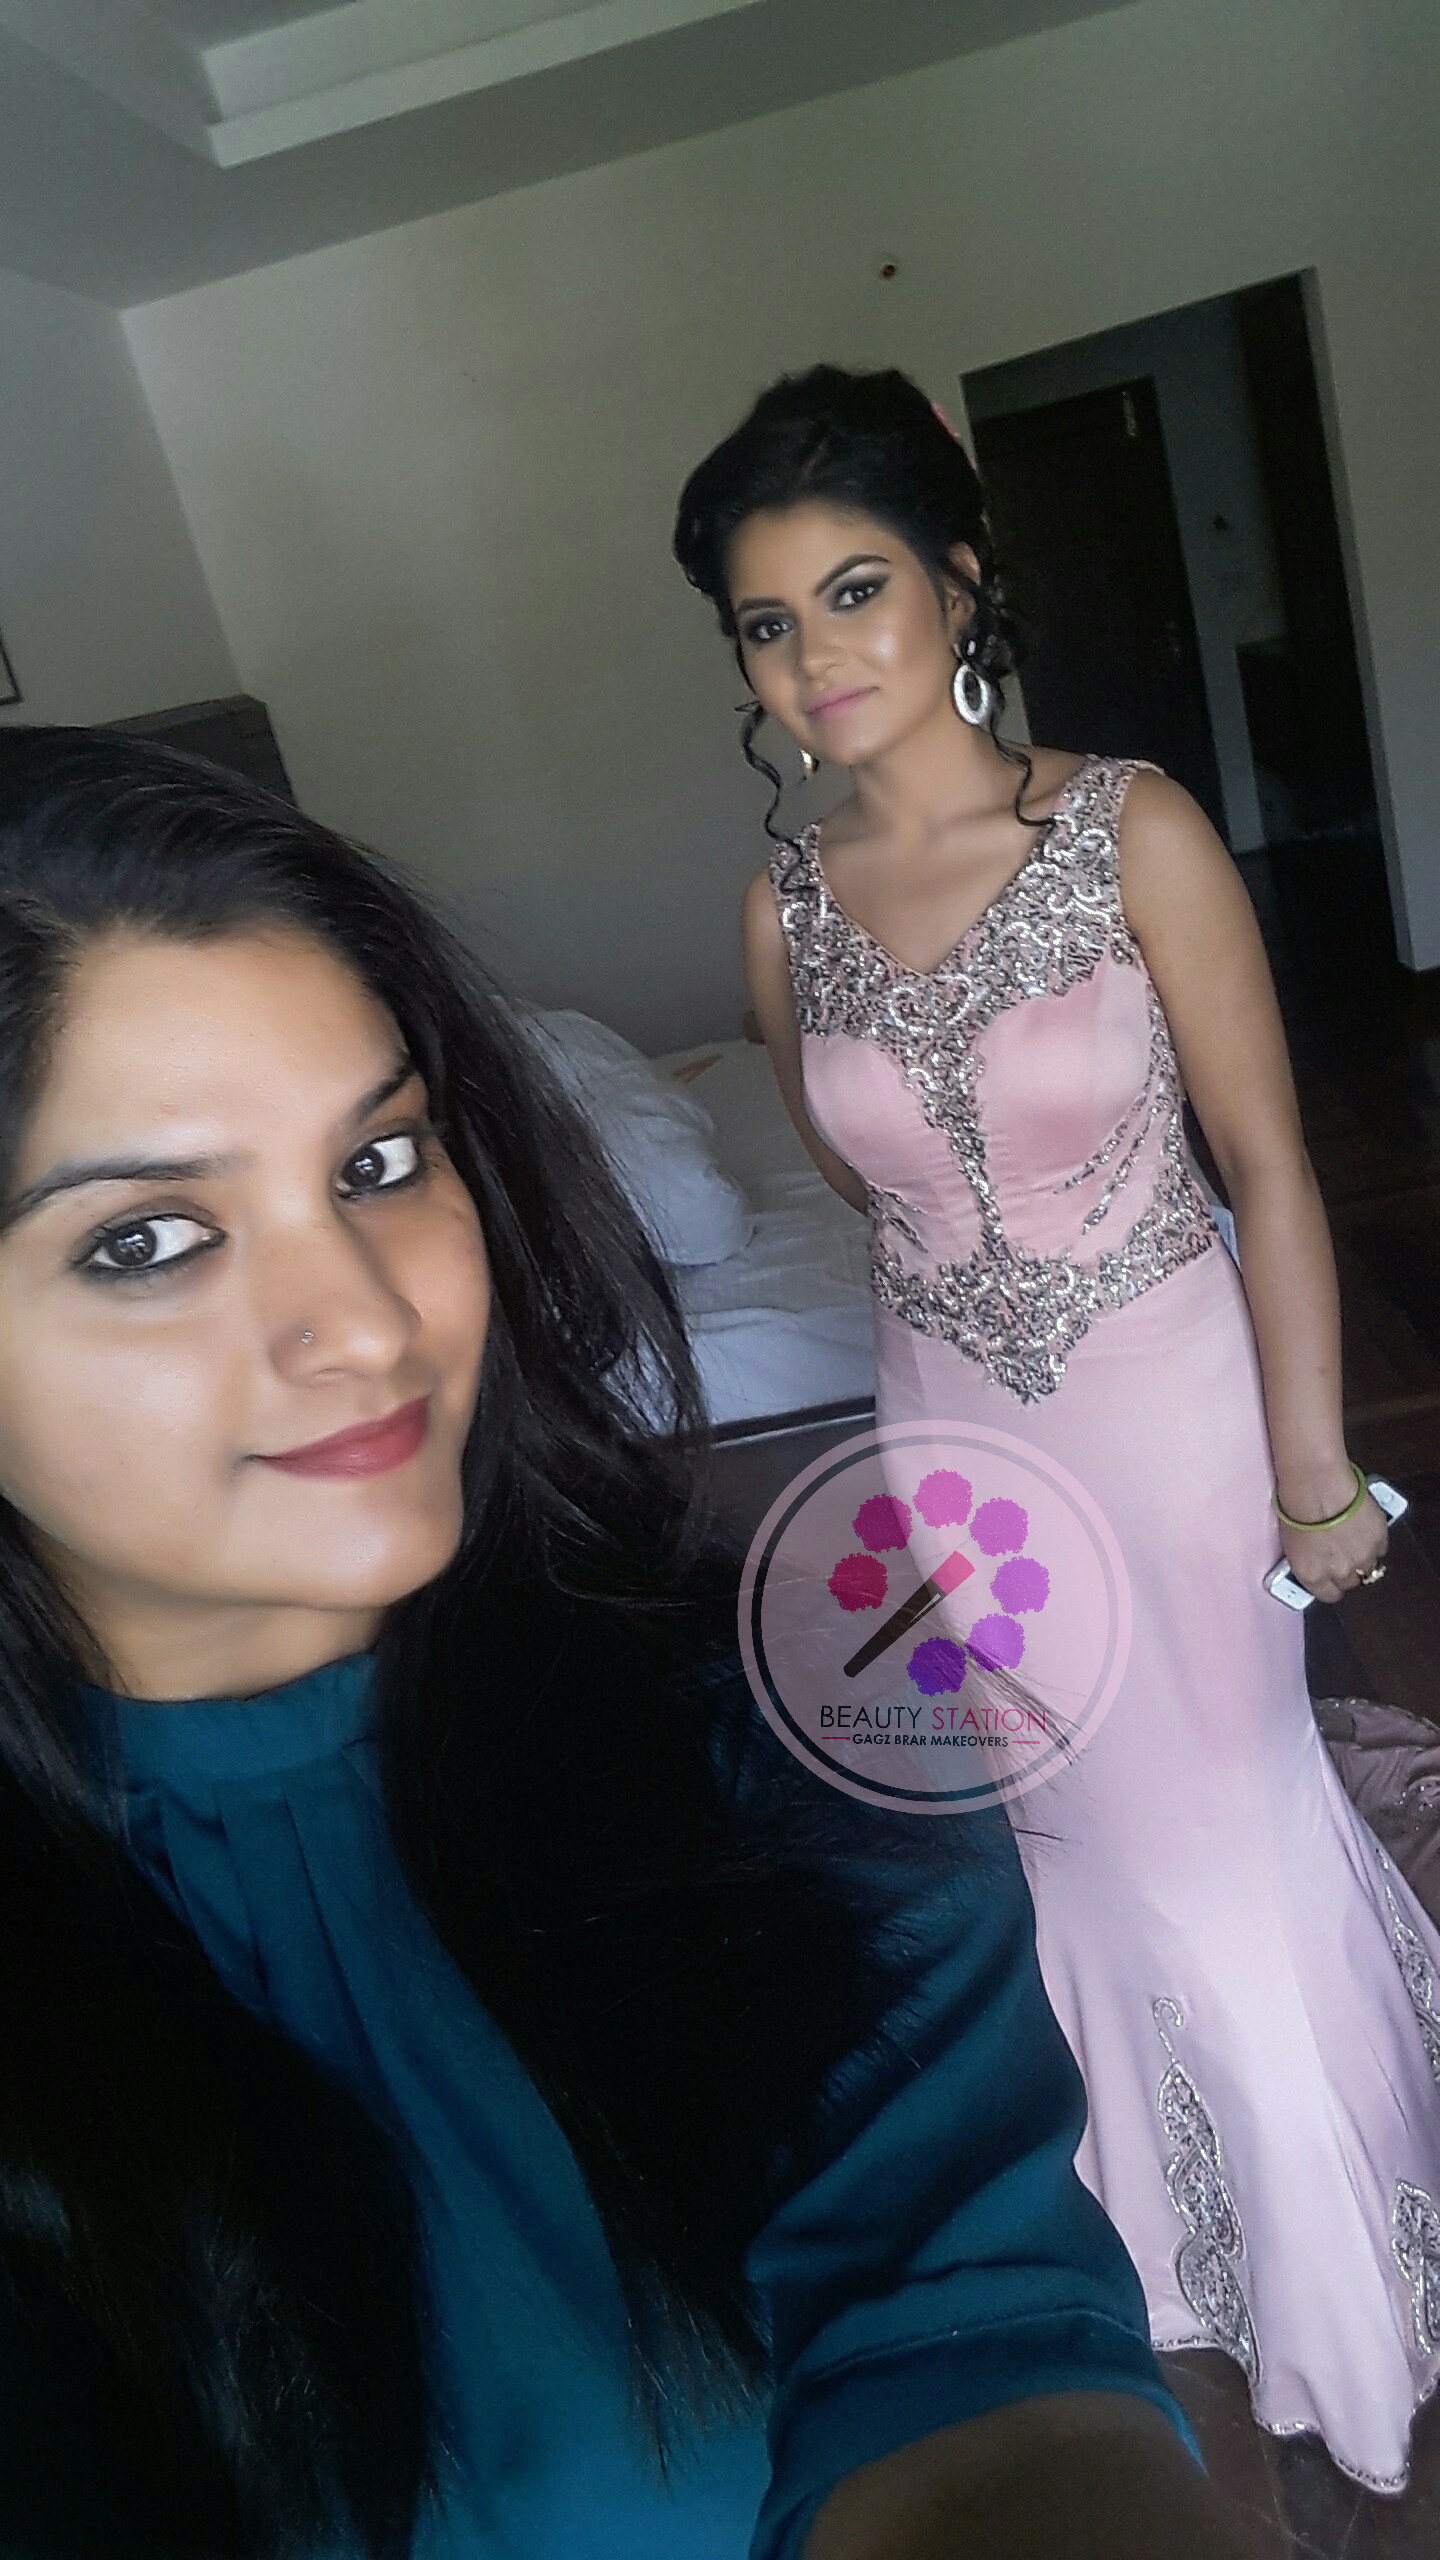 Done #engagement #makeover Dharamshala.(HP) #awesome #weather #lovely #client #beautiful #pink #outfit #shiney #face #black #Smokey #eyes #just #wow 😍  Booking open for 2017 Brides. Flat 30% discount on first 10 Brides anywhere in India. First come first service. Makeup at your doorstep globally. #makeupartist #hairstylist #GagzBrar #gagzbrarmakeovers  +91-7087555656, +91- 9888050866